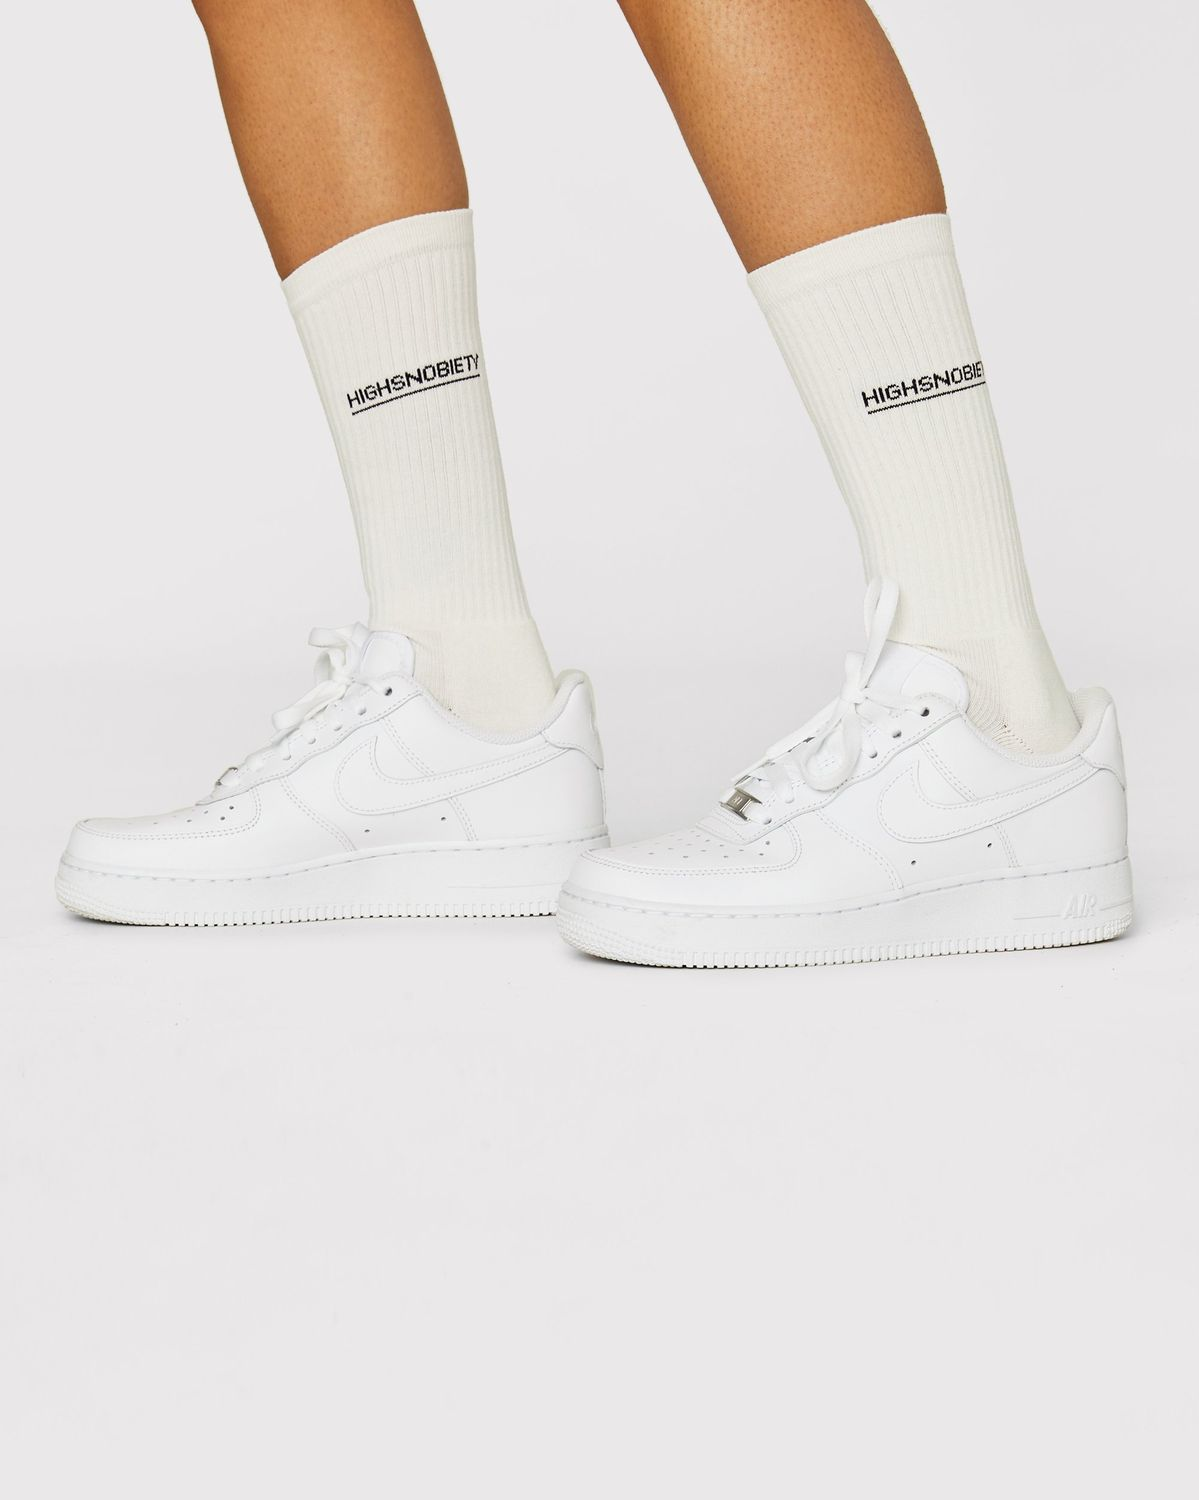 Highsnobiety Staples - Socks White - Image 3